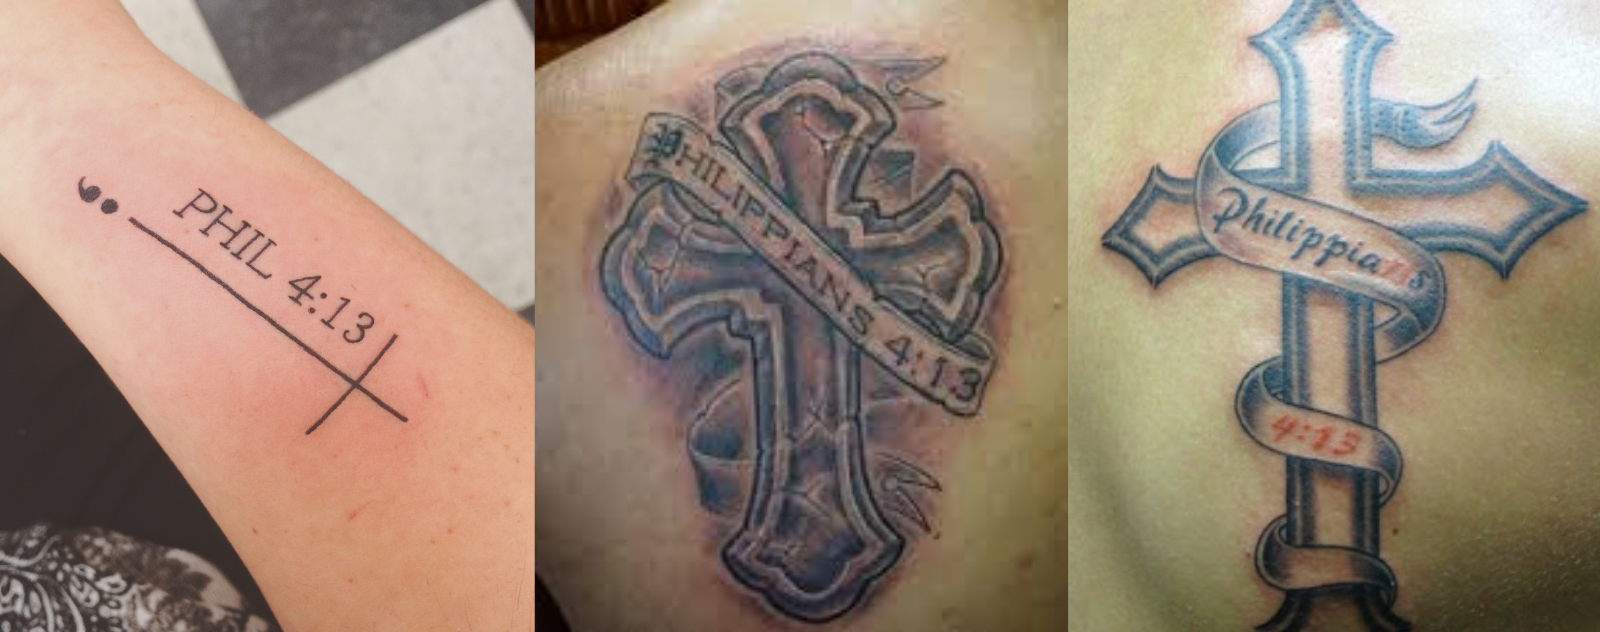 philippians-4-13-tattoo-with-cross-2